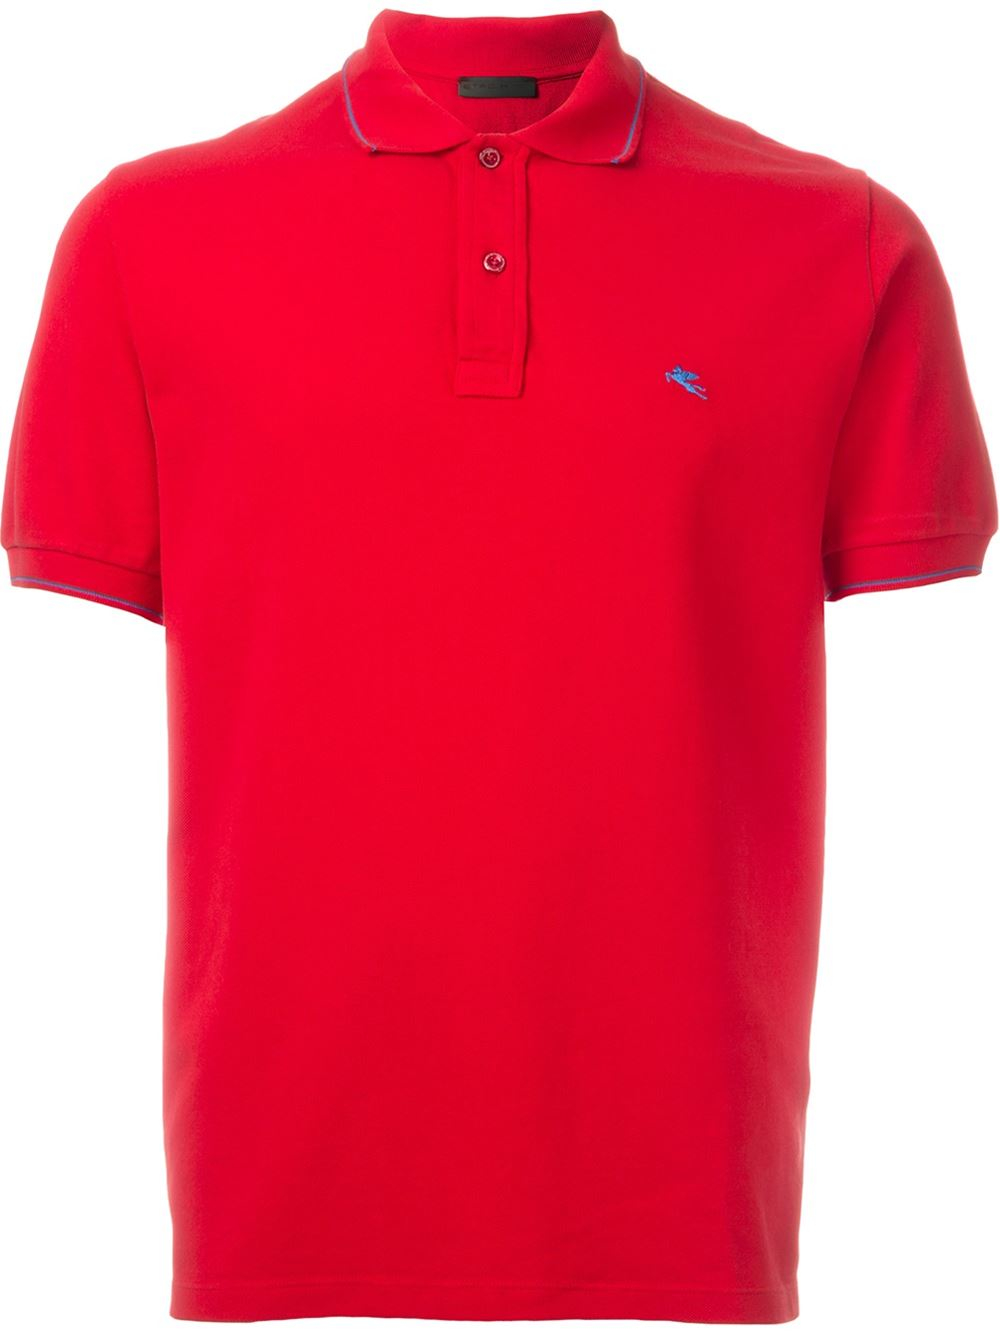 Etro logo embroidered polo shirt in red for men lyst for Cheap polo shirts embroidered